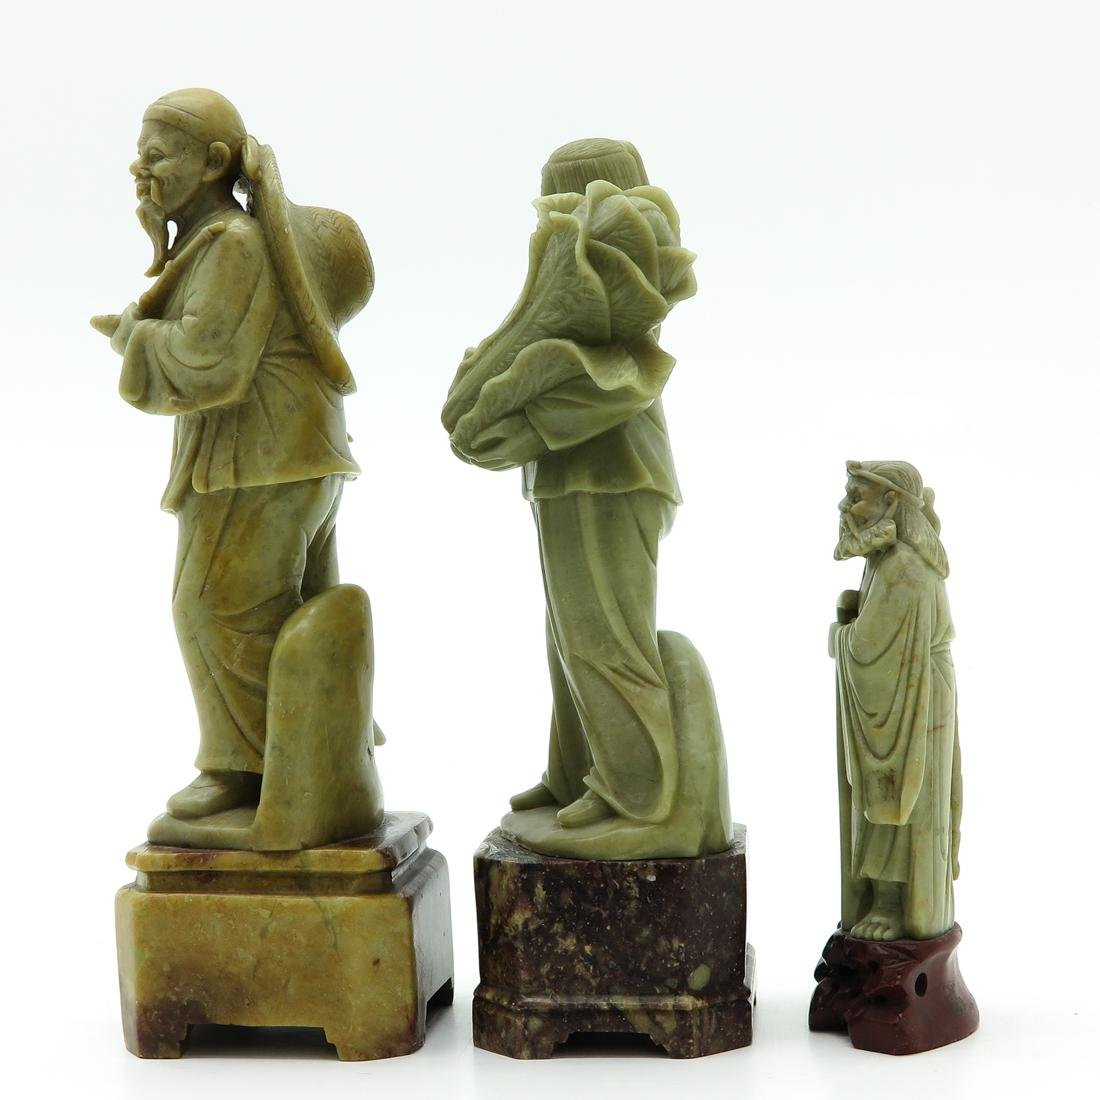 Lot of 3 Soapstone Sculptures - 2